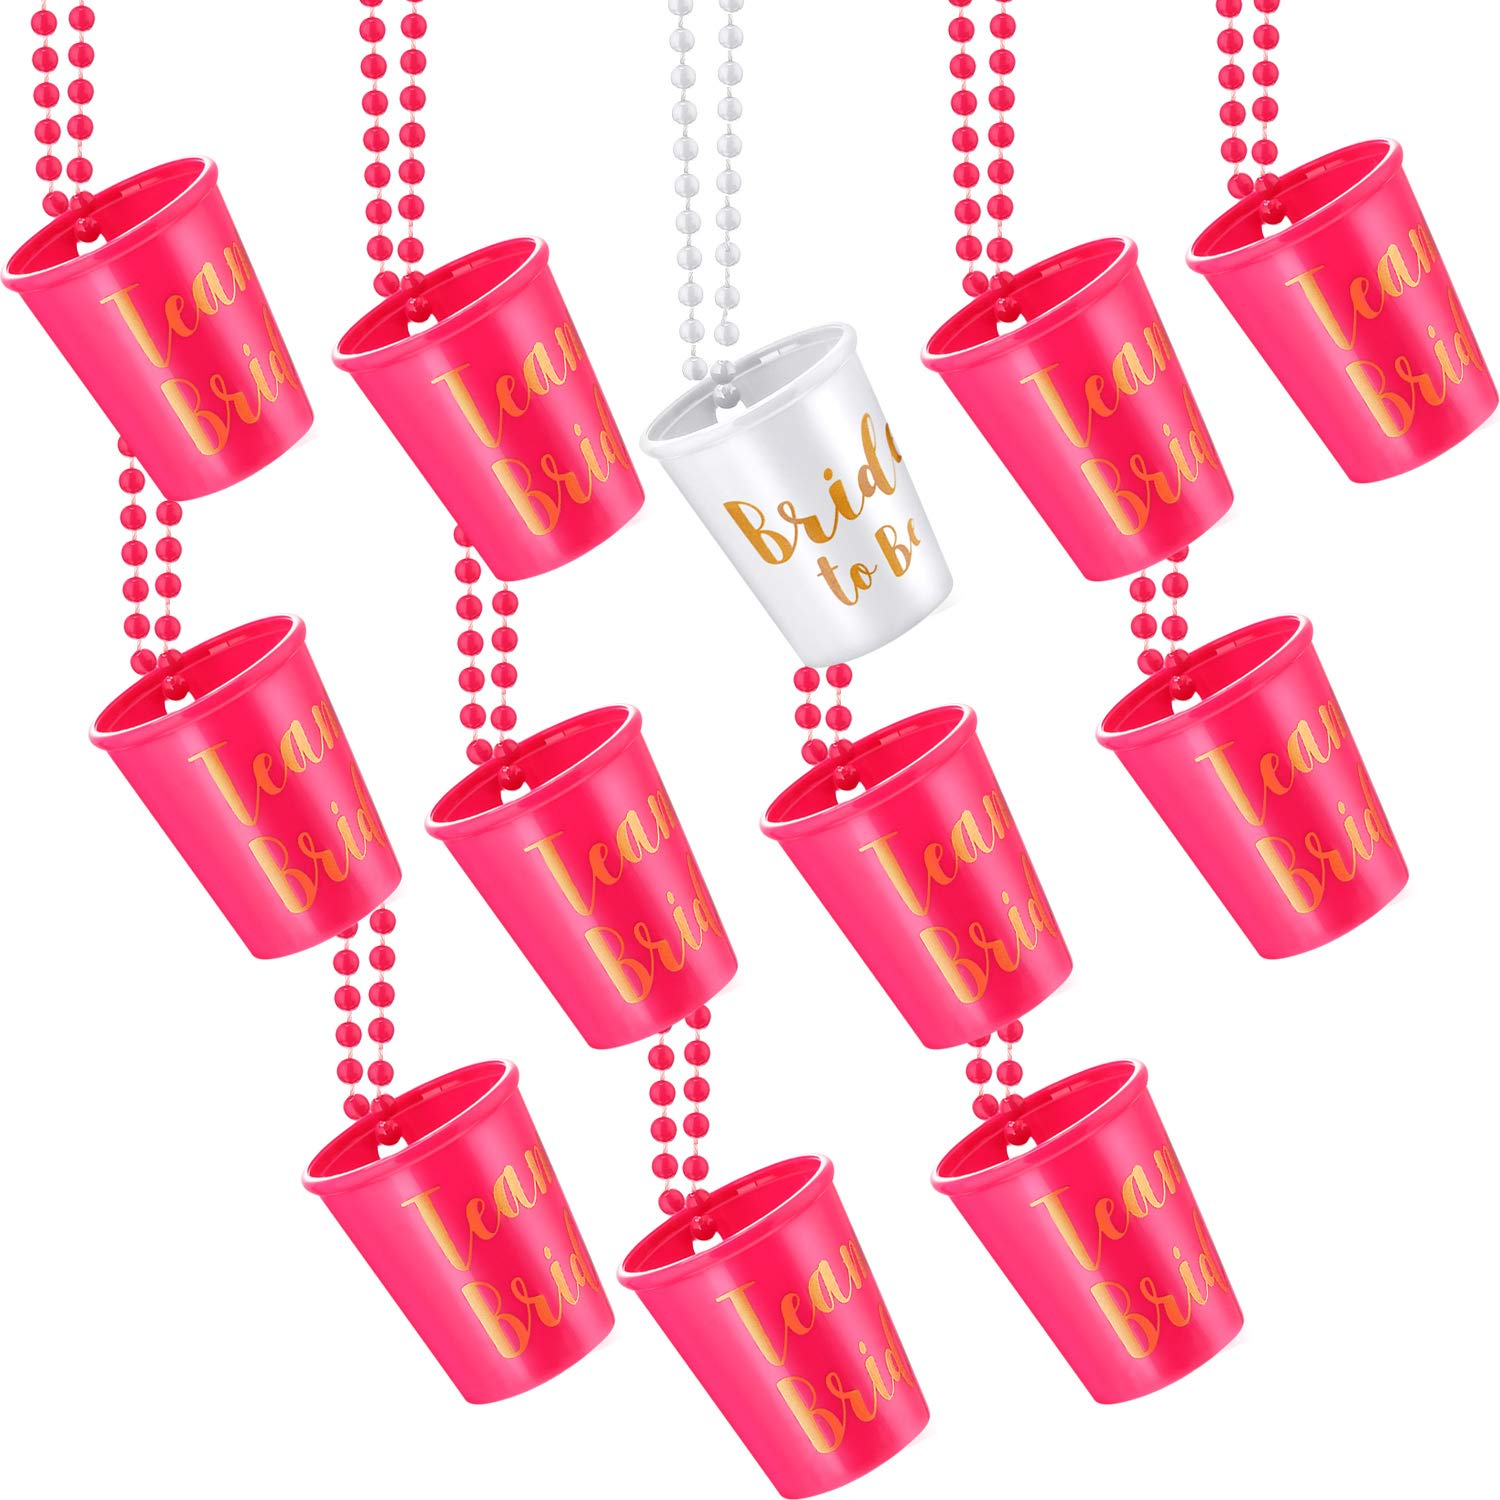 12 Pieces Team Bride and Bride to Be Plastic Beaded Bridal Shot Glass Necklace Pink and White with Gold Foil for Bachelorette Party Bridal Party Necklaces